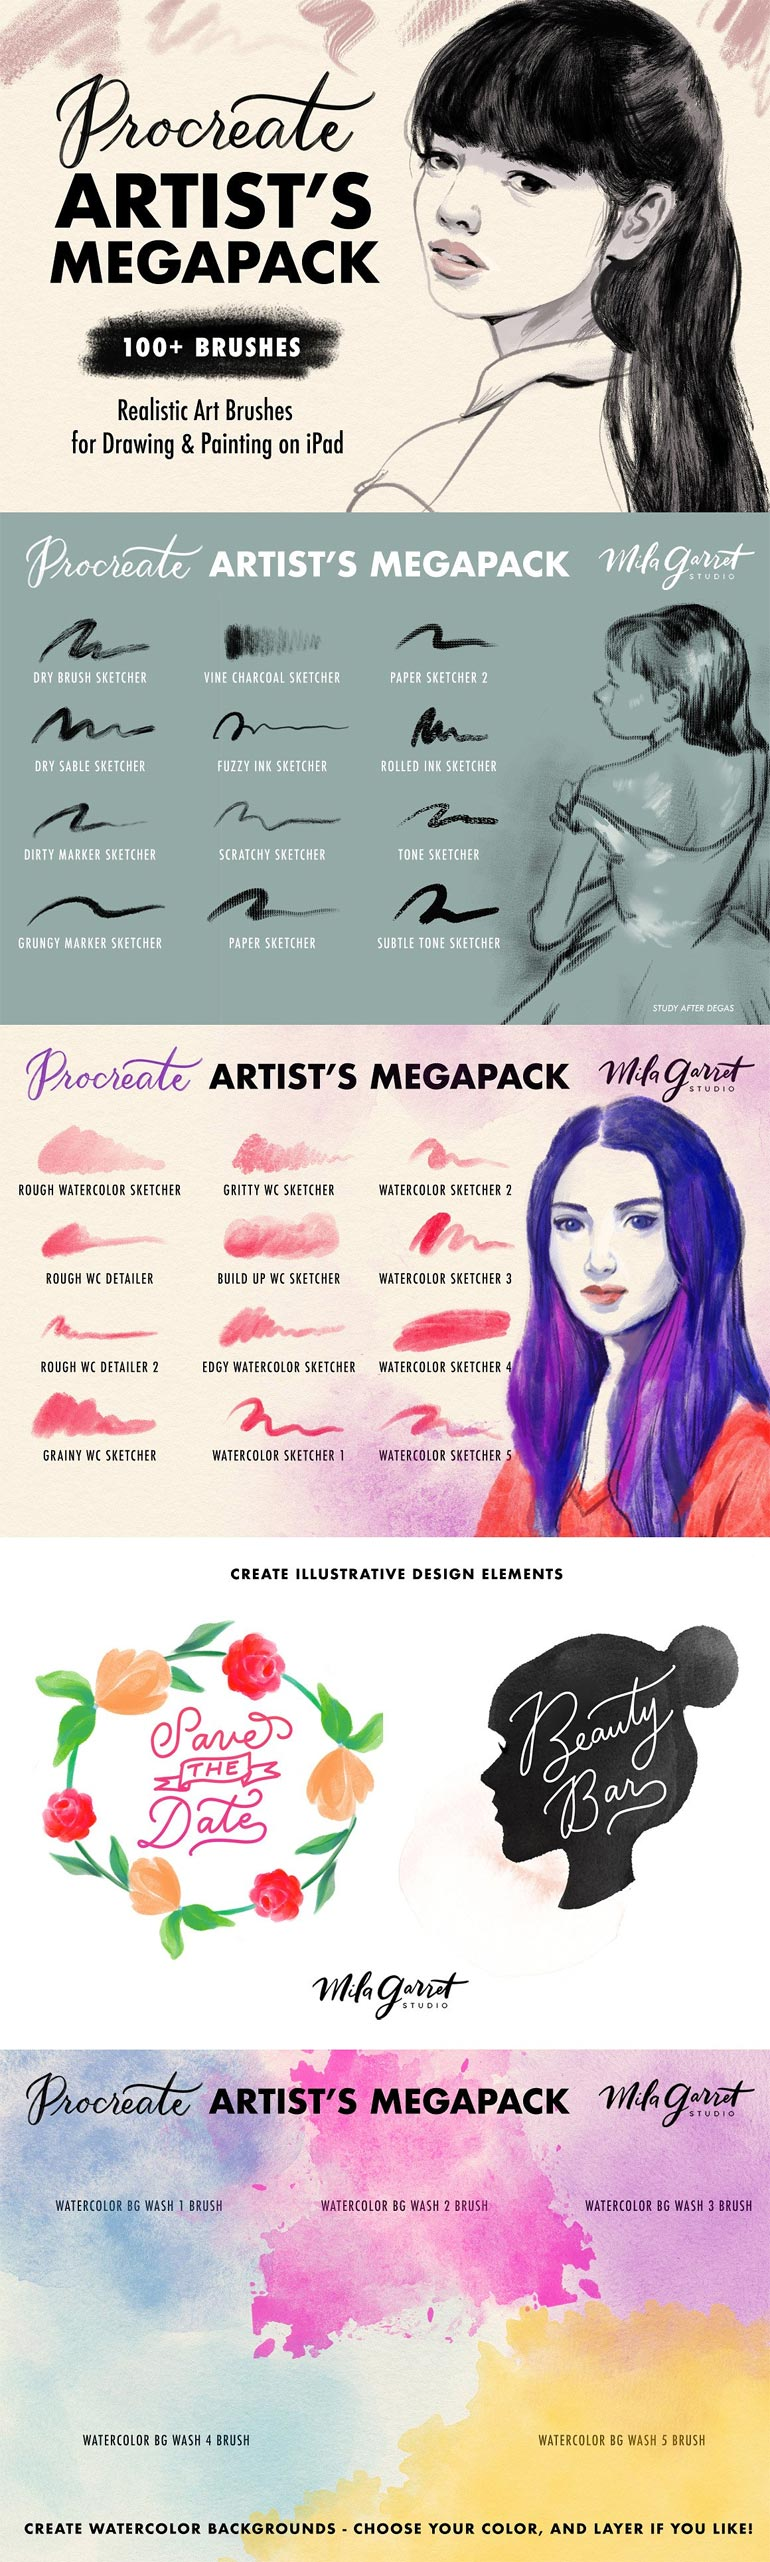 Procreate Brushes: Artist's Megapack